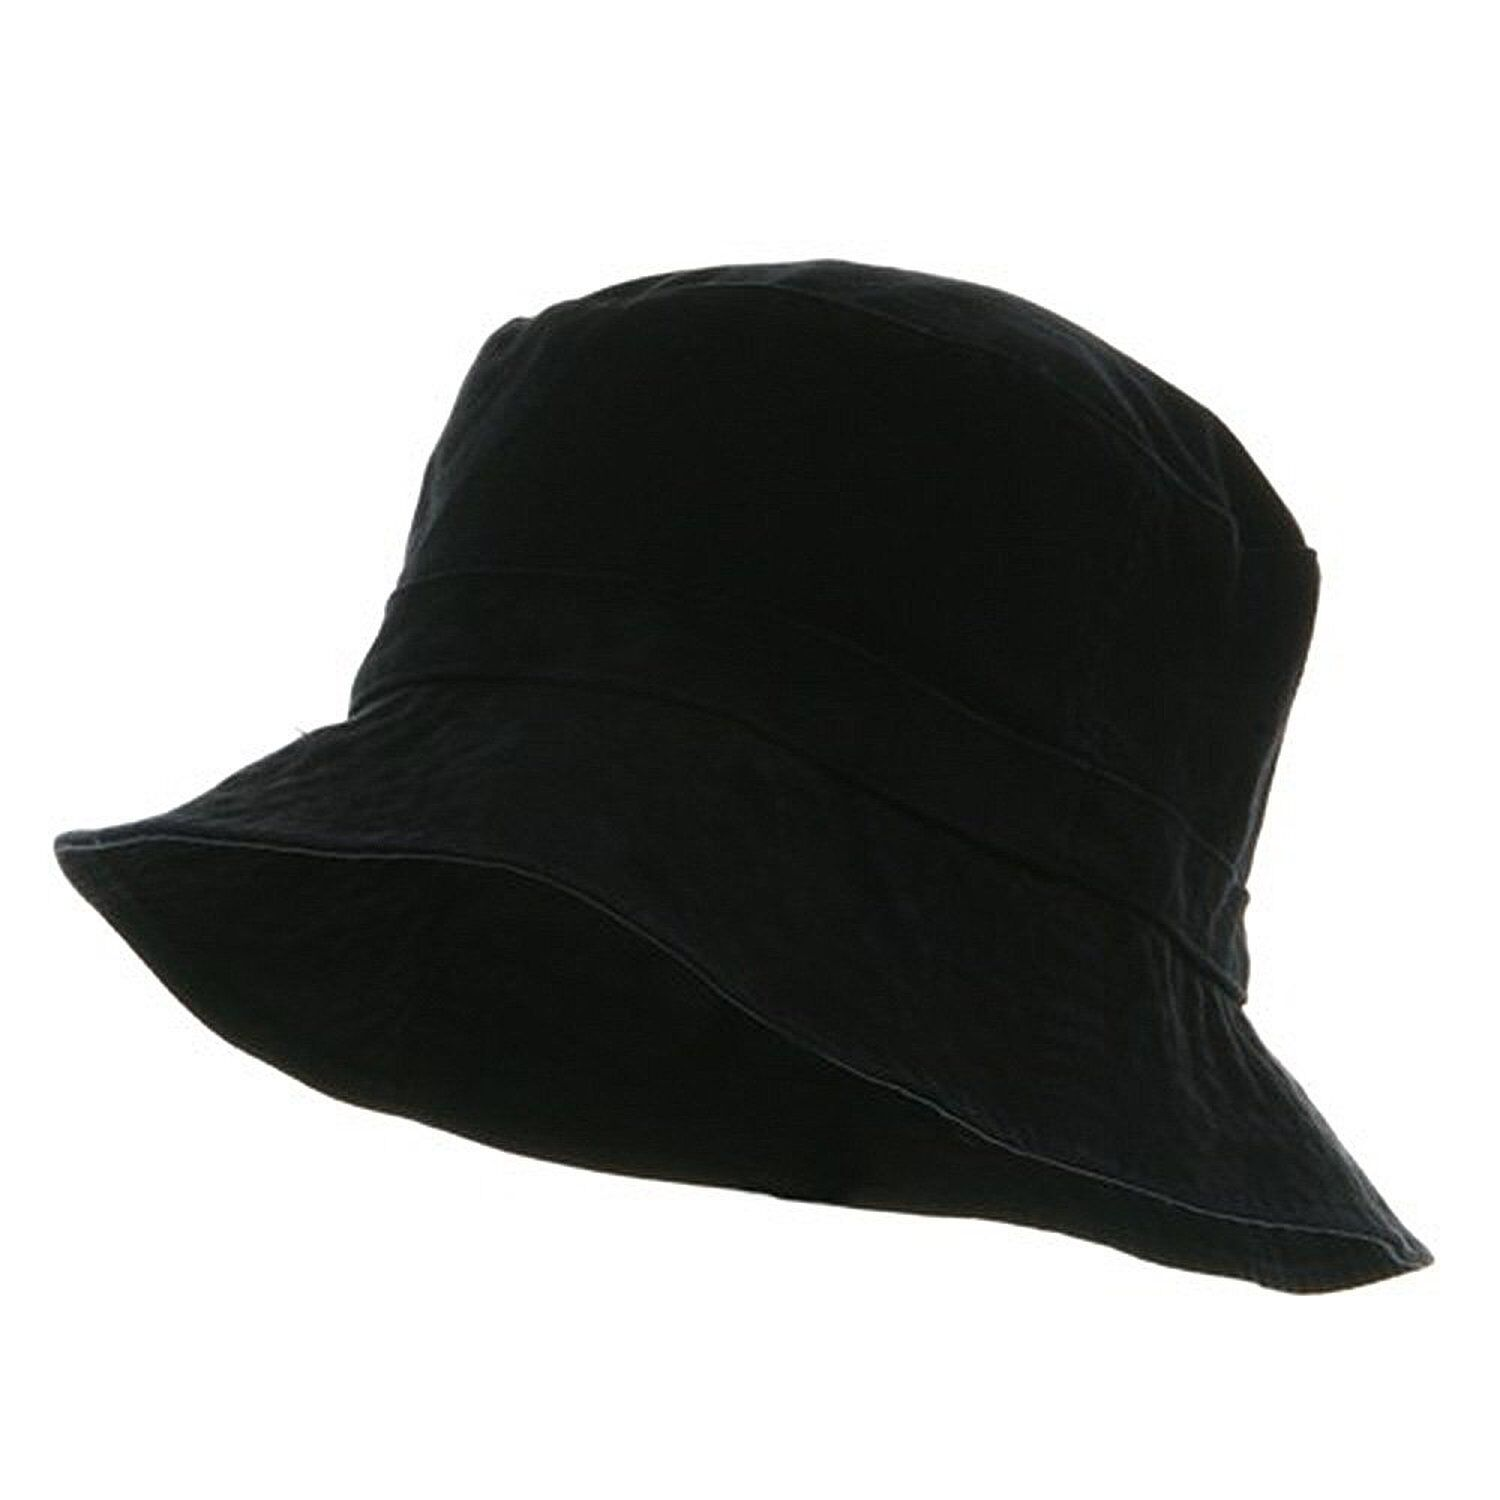 1edc085e638 Details about Black Fishermans Fishing Hunting Army Military Bucket Jungle  Safari Cap Hat